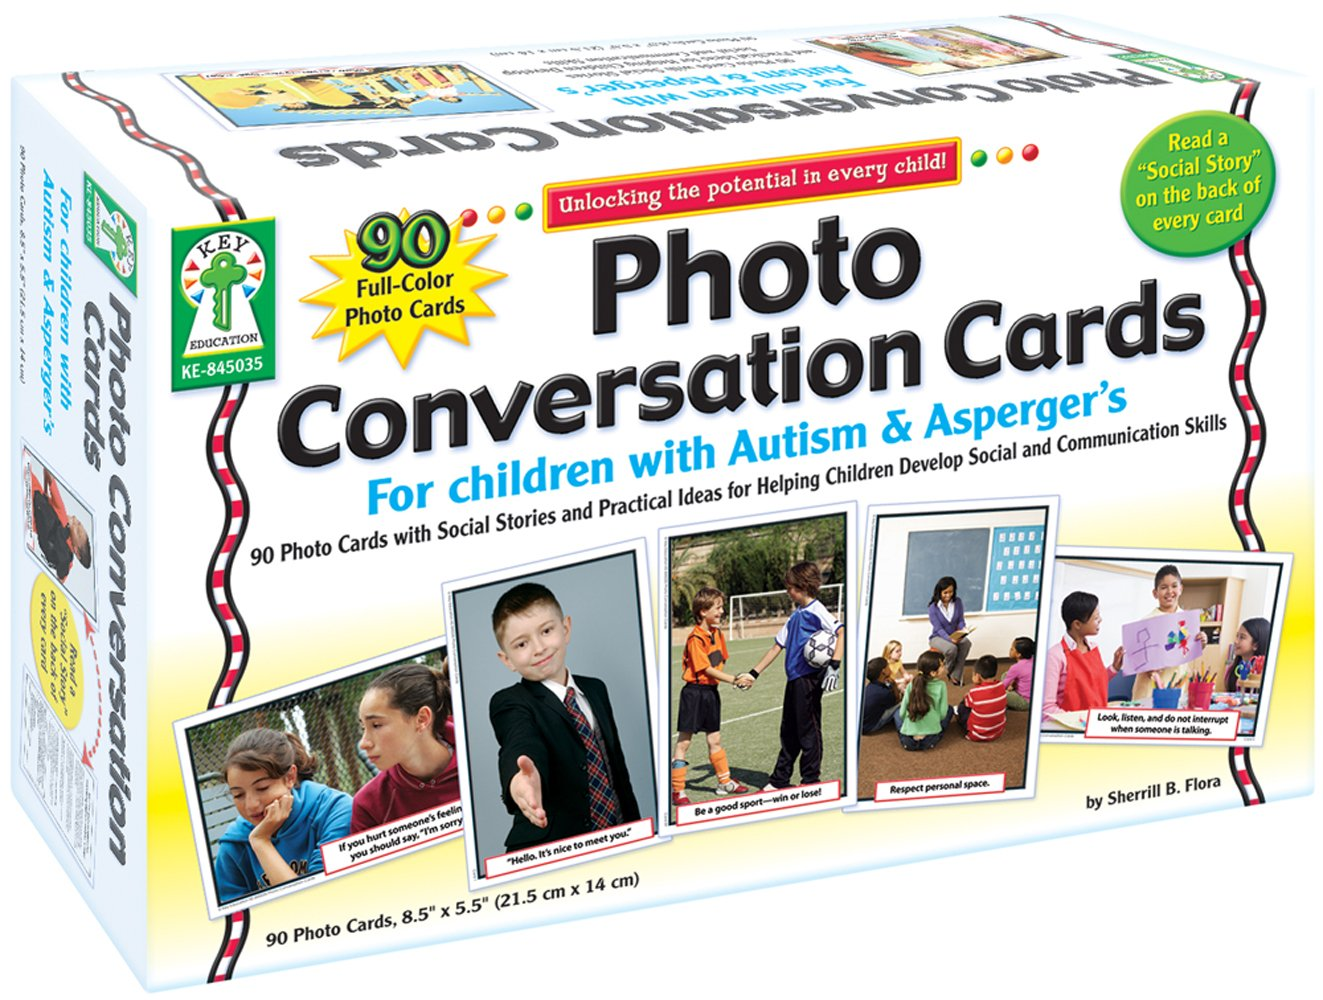 Key Education Photo Conversation Cards for Children with Autism and Asperger's by Key Education